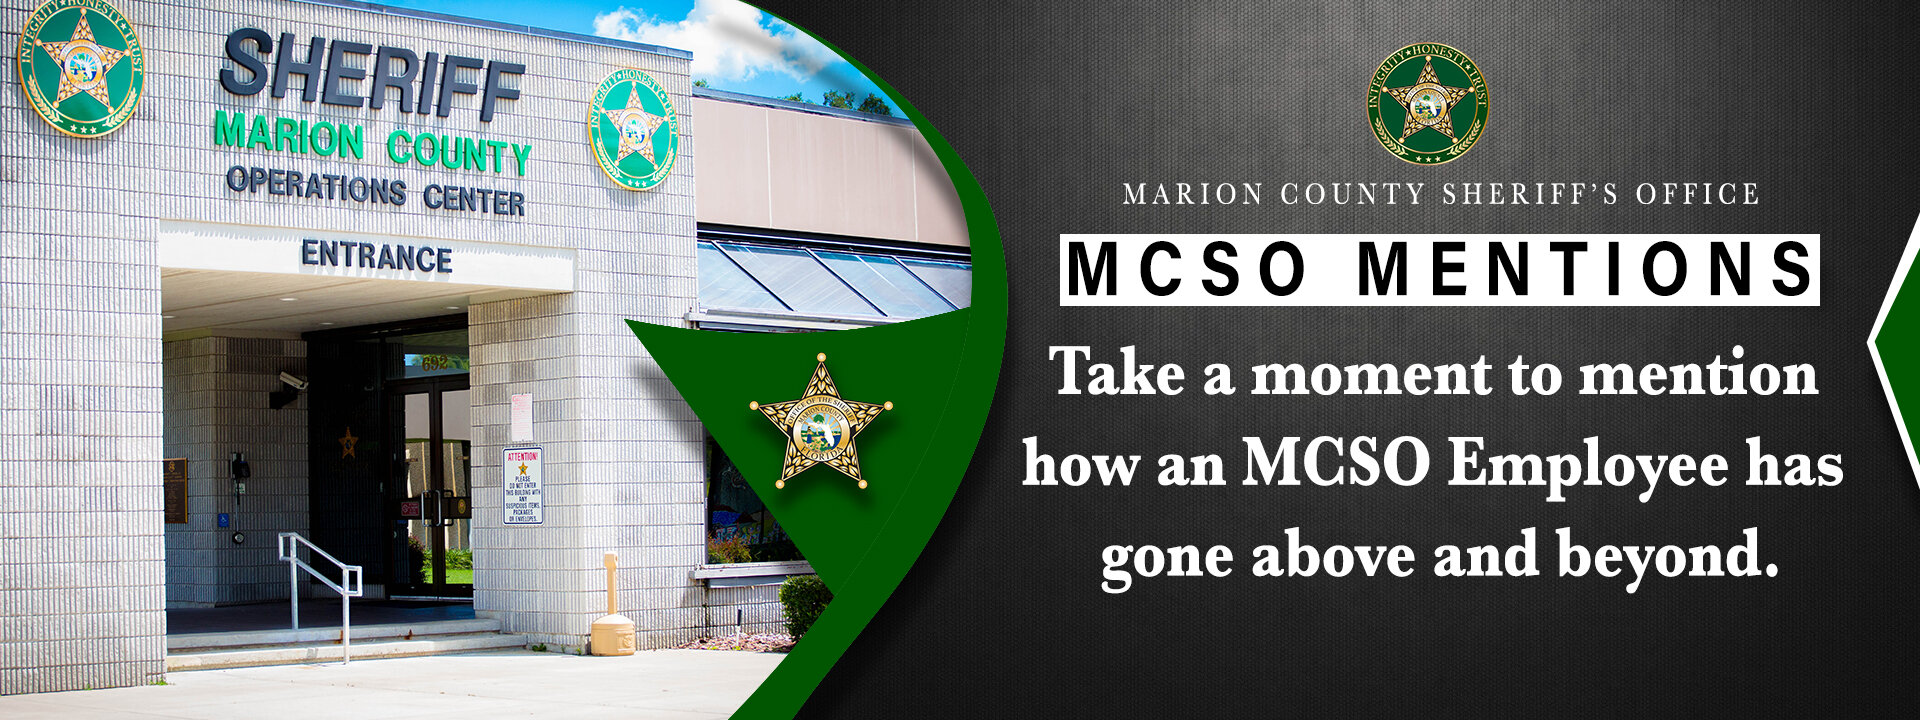 MCSO MENTIONS.jpg